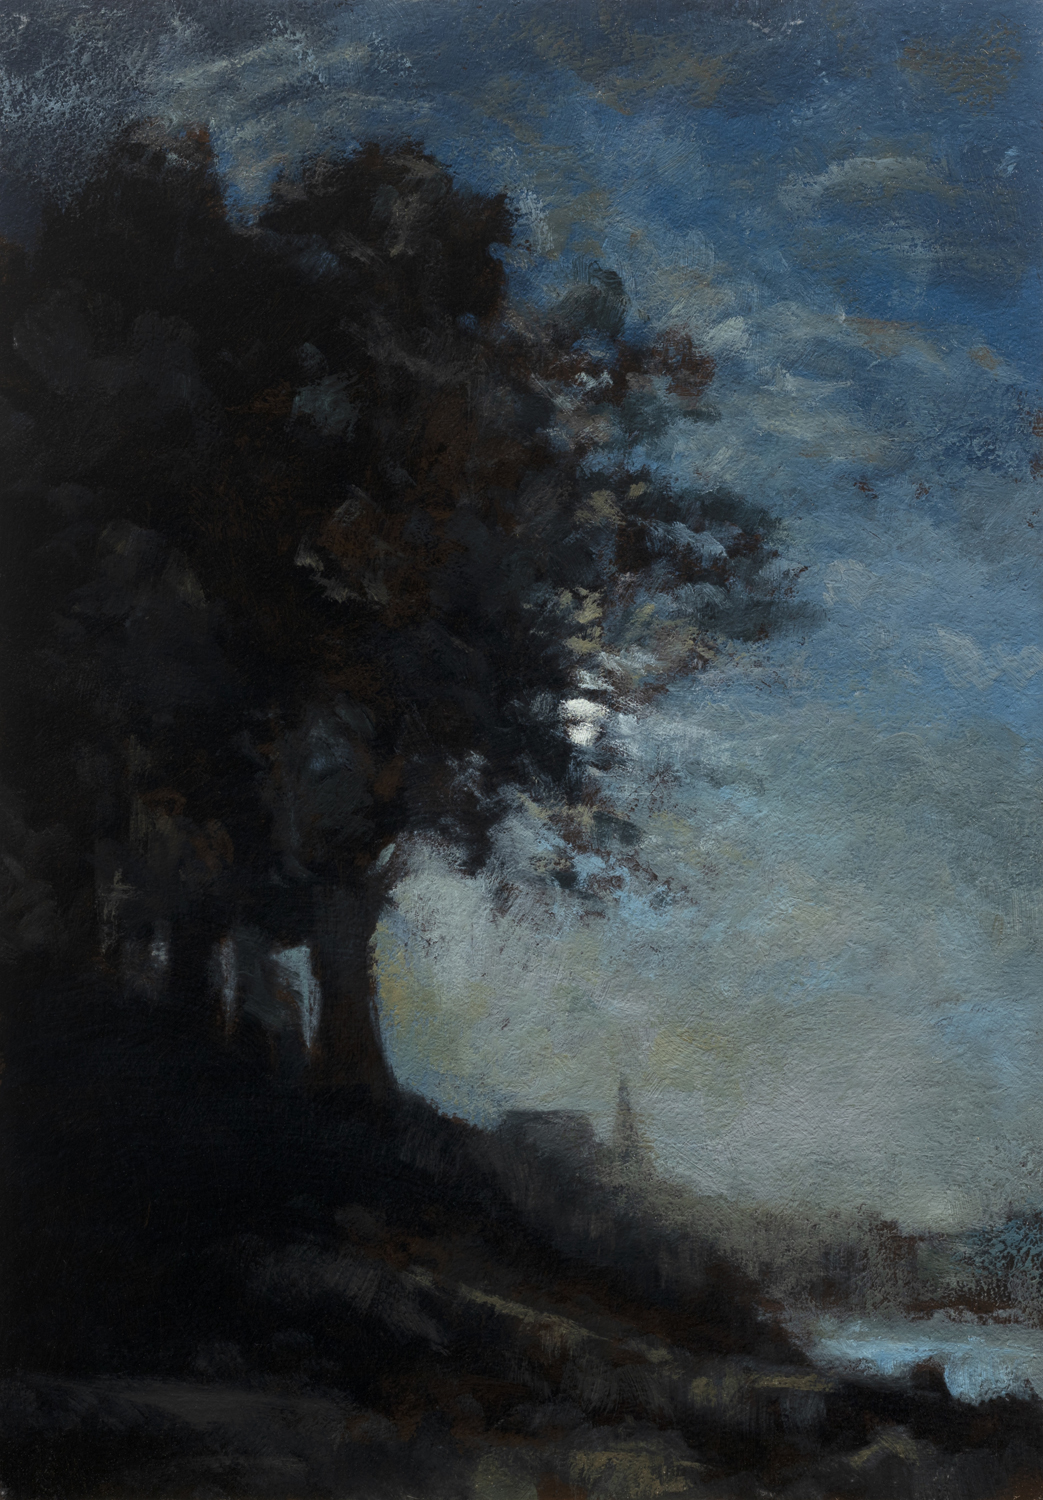 Study after: Camille Corot Lisere de Bois by M Francis McCarthy - 7x10 Oil on Wood Panel